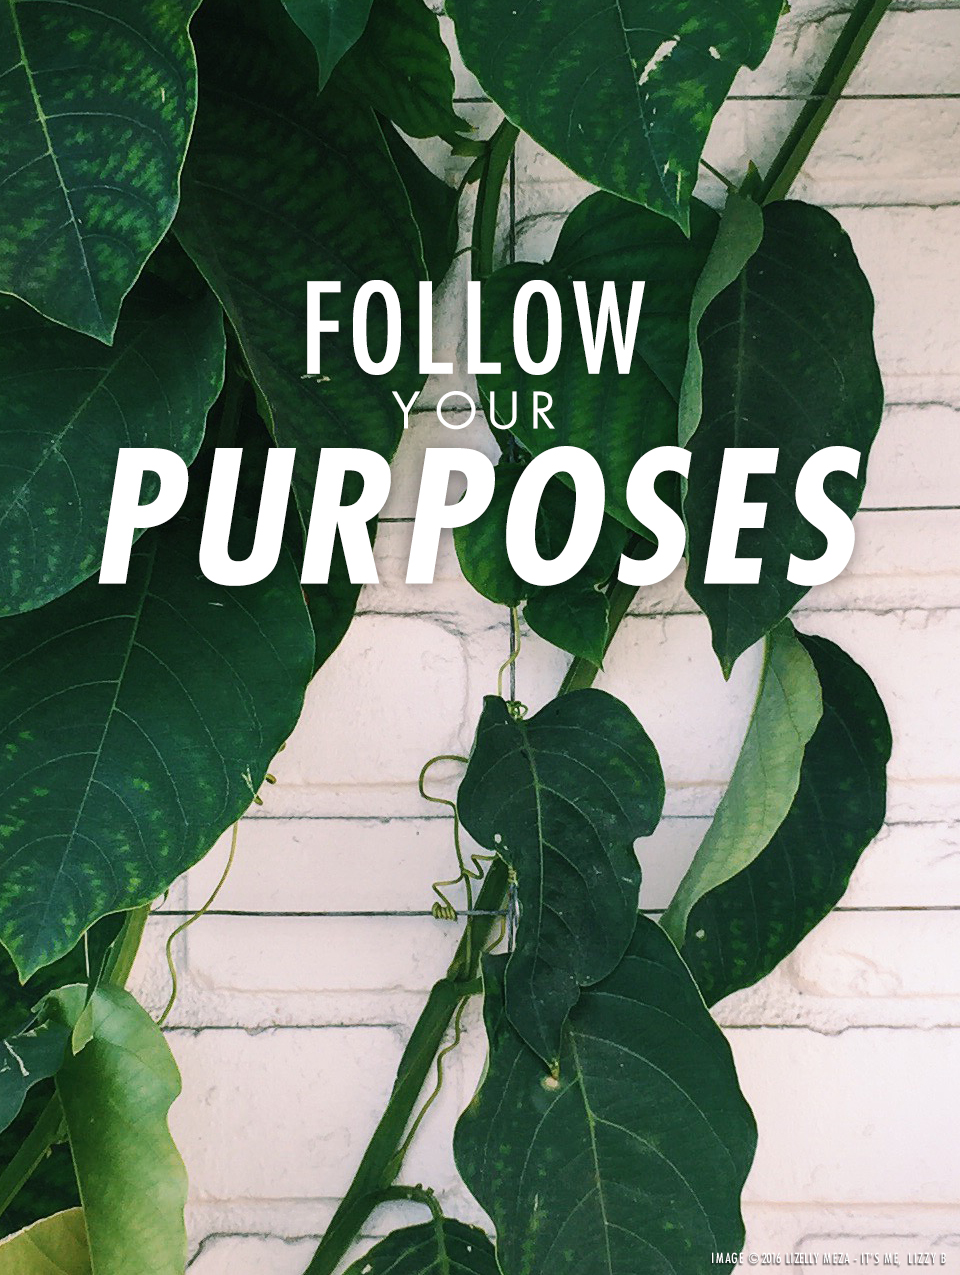 Follow Your Purposes // It's Me, Lizzy B - Musings on Life, Business, & The Pursuit of Curiosity // Personal blog of Lizelly Meza from Lizzy B Loves